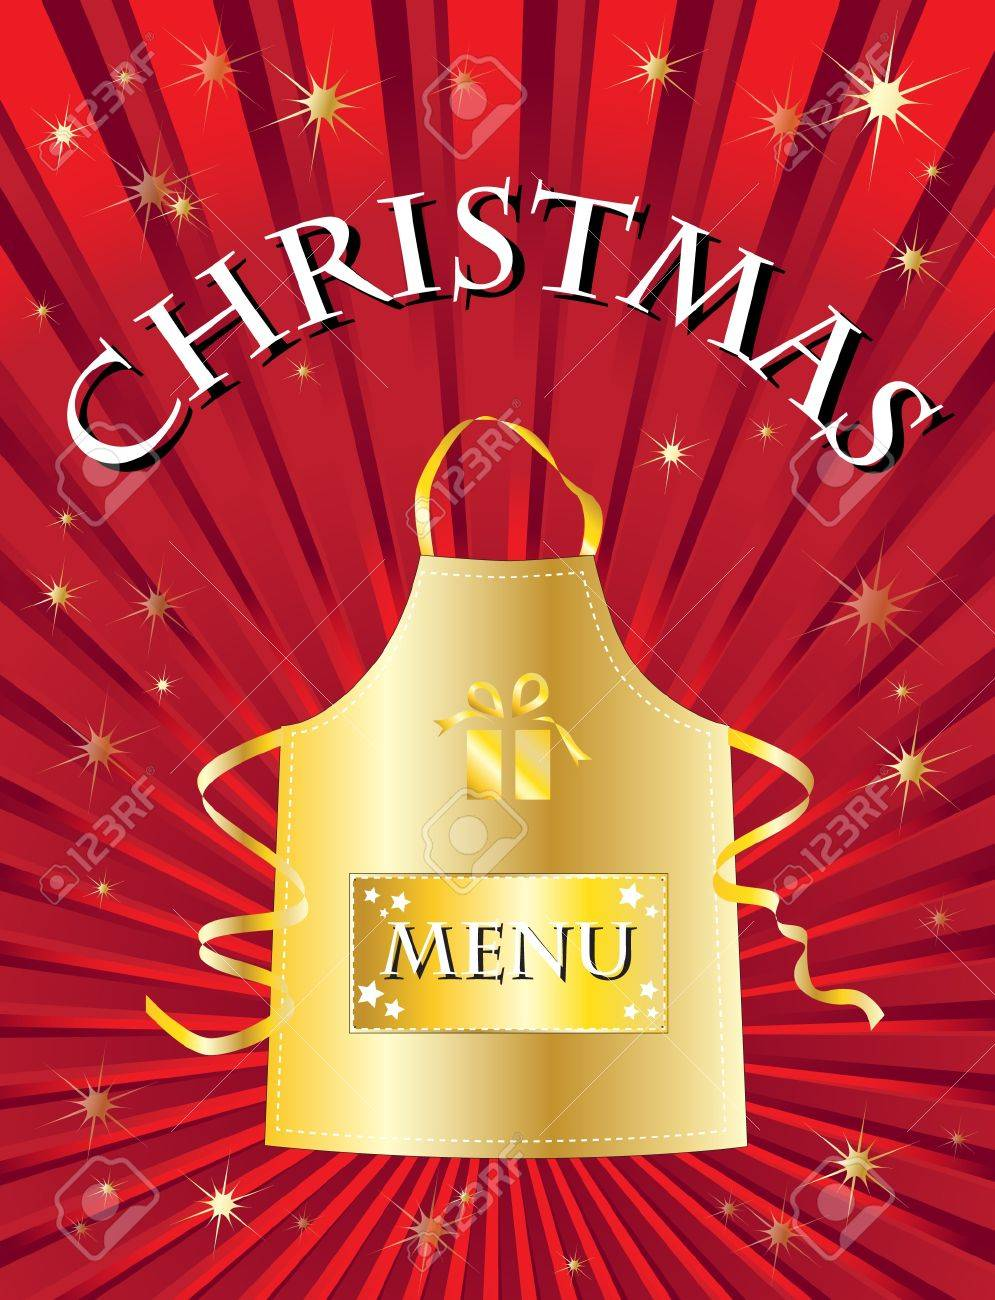 a menu template for a christmas menu royalty cliparts a menu template for a christmas menu stock vector 10695127